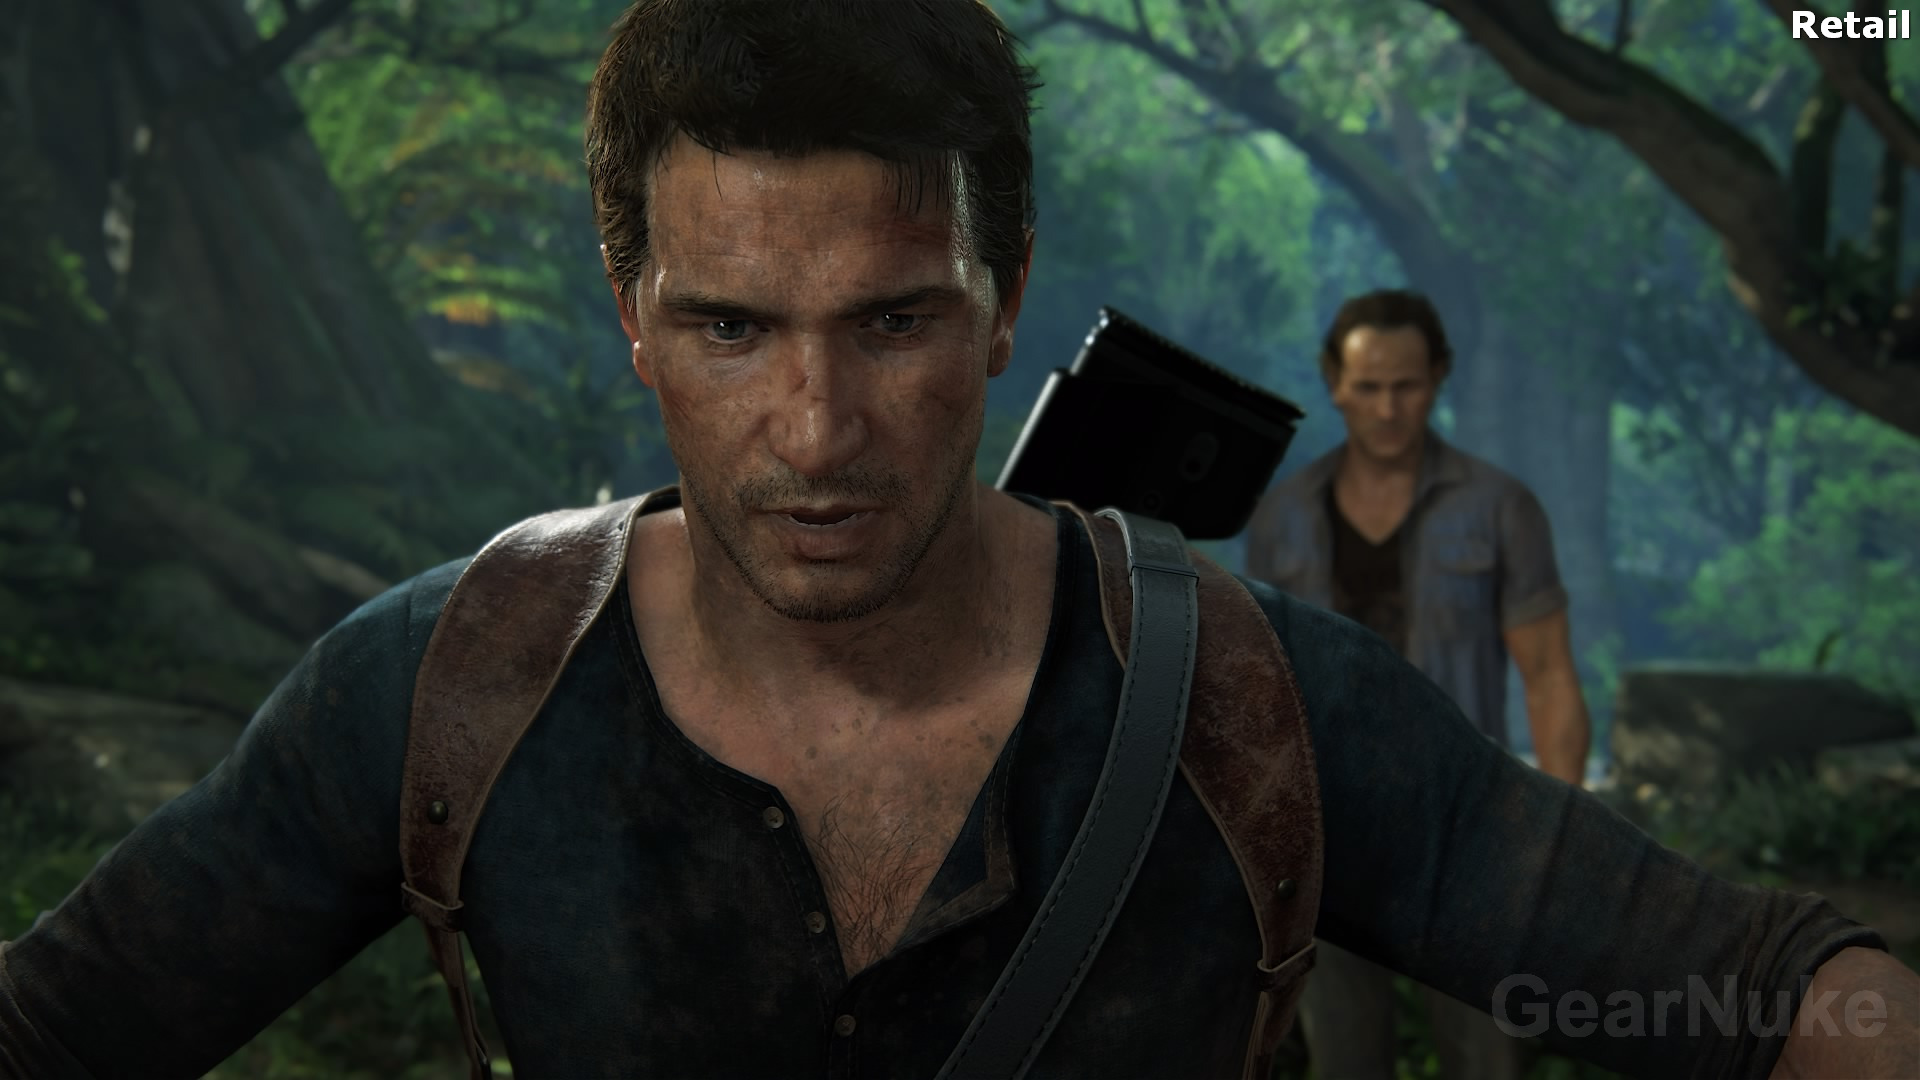 Uncharted 4: Here's How To Get All Special Render Modes And Audio Filters | GearNuke